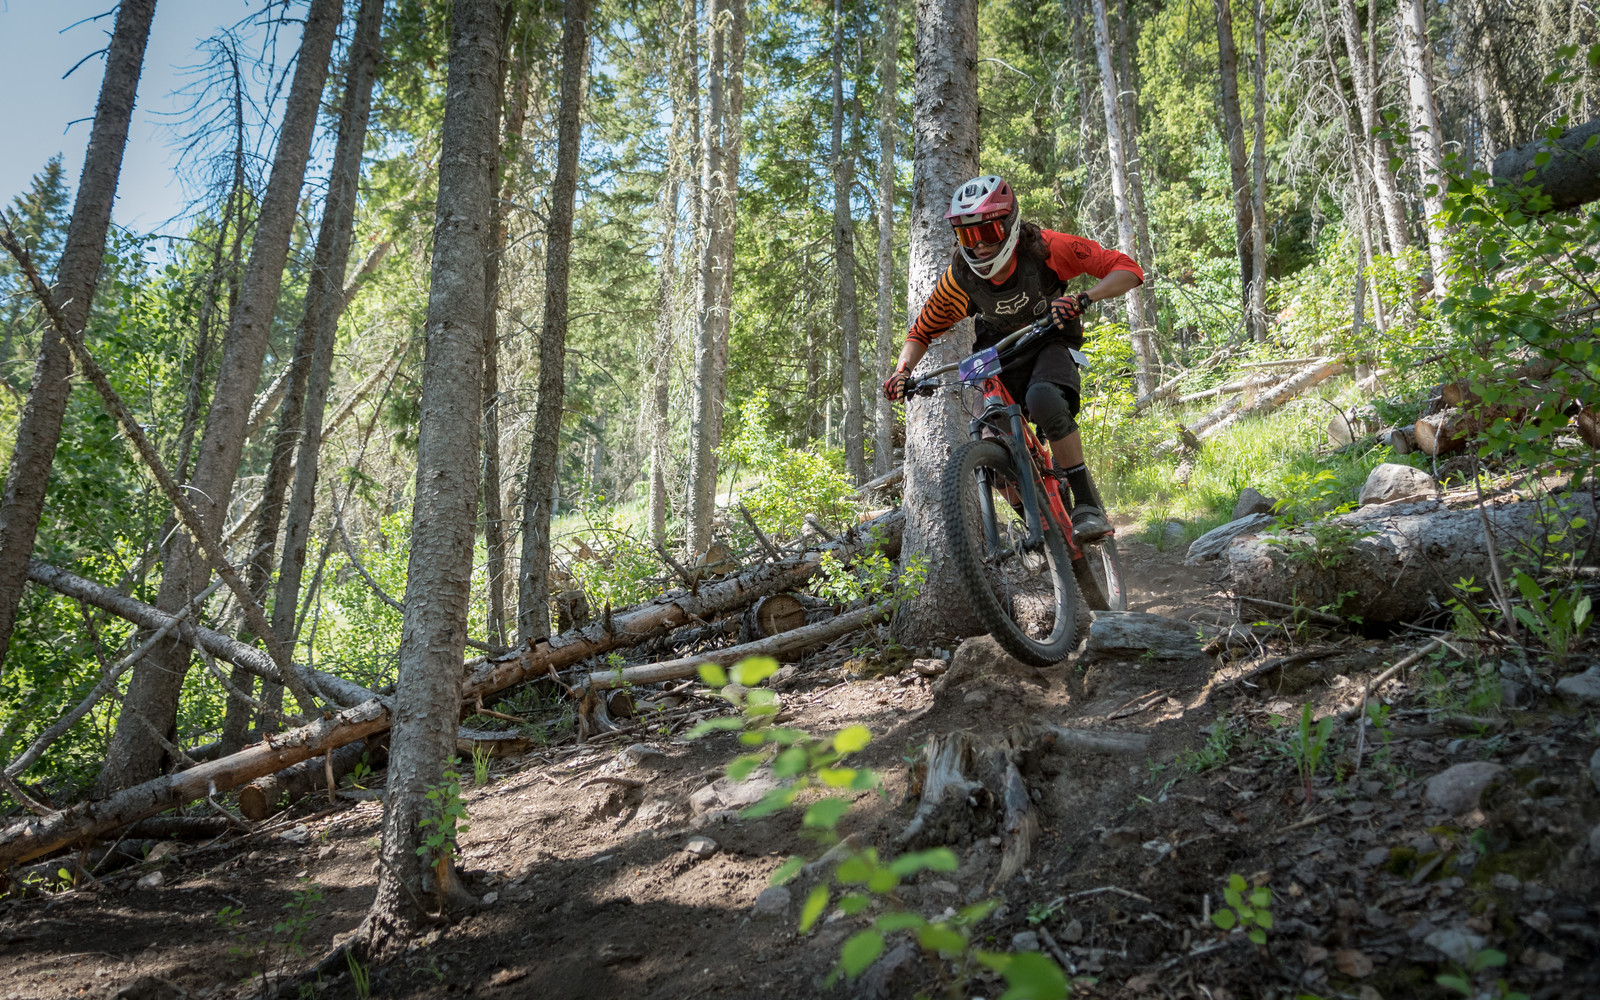 Paja is quickly becoming a rider favorite due to it's amazing terrain.